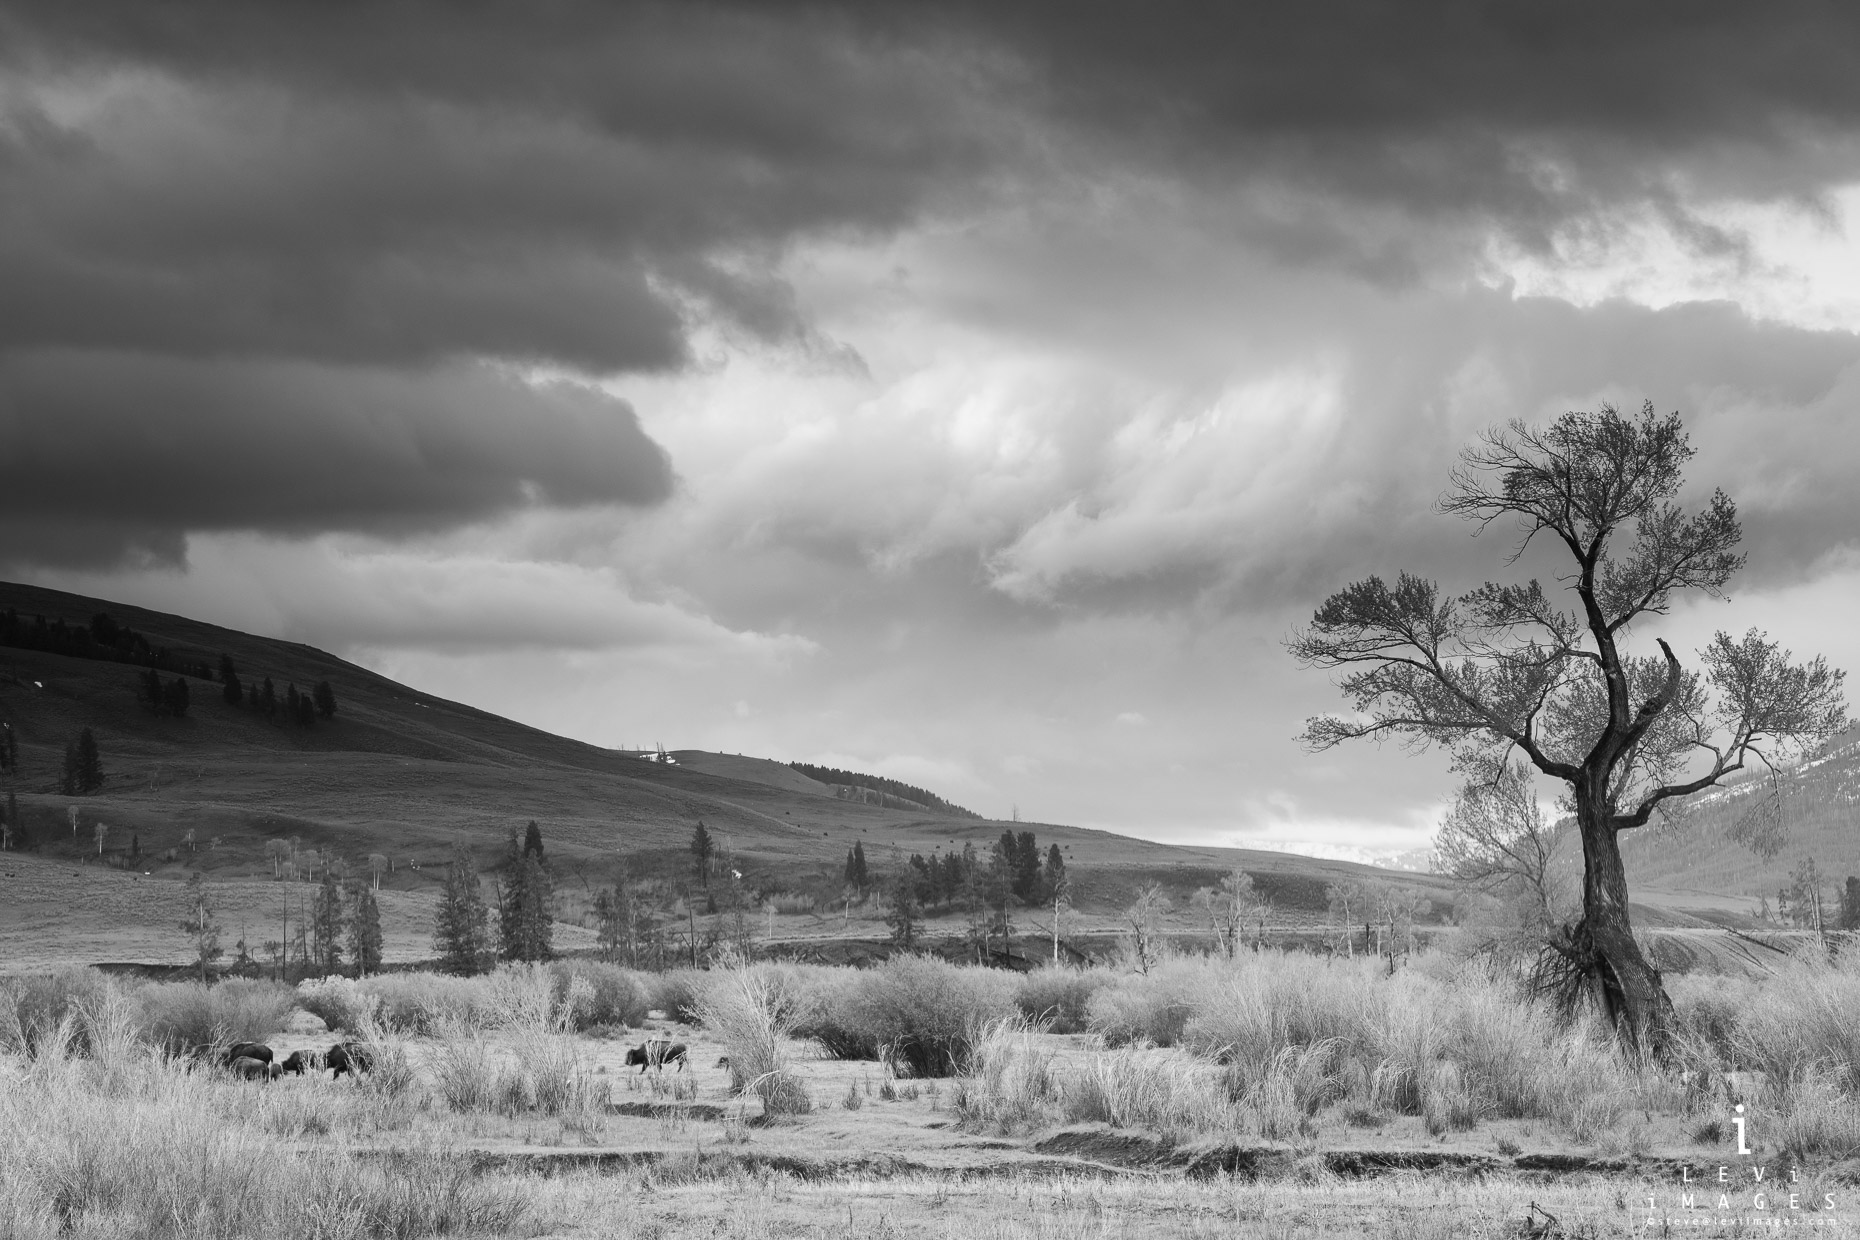 A Dramatic Yellowstone landscape is captured in black and white. Yellowstone National Park, Wyoming